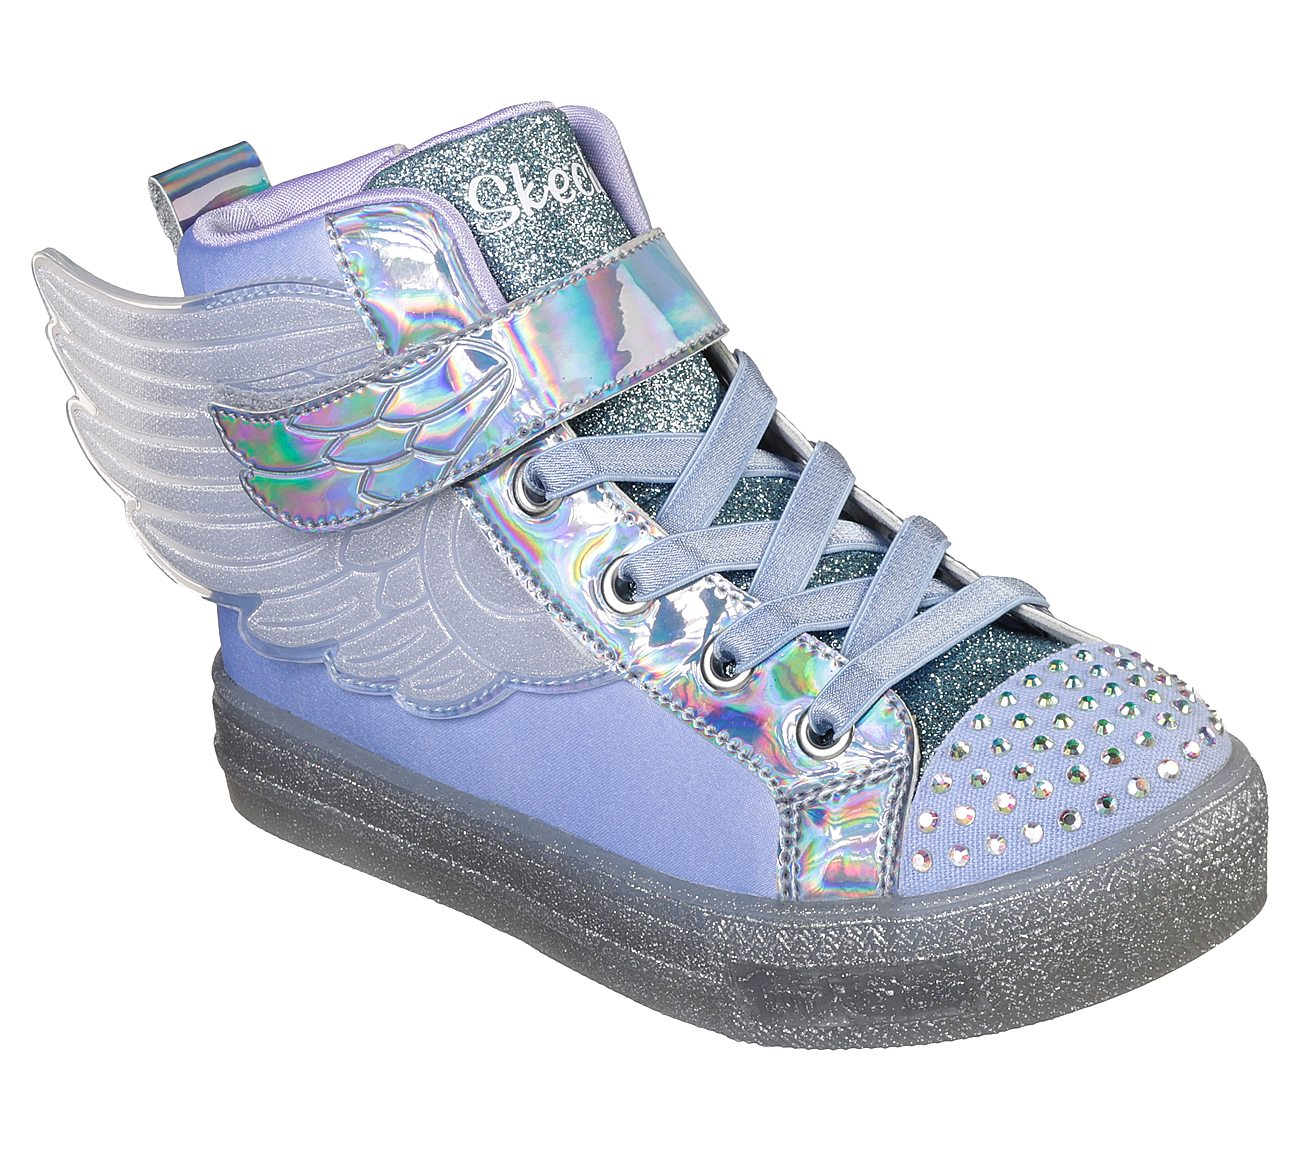 Twinkle Toes: Shuffle Brights Sparkle Wings